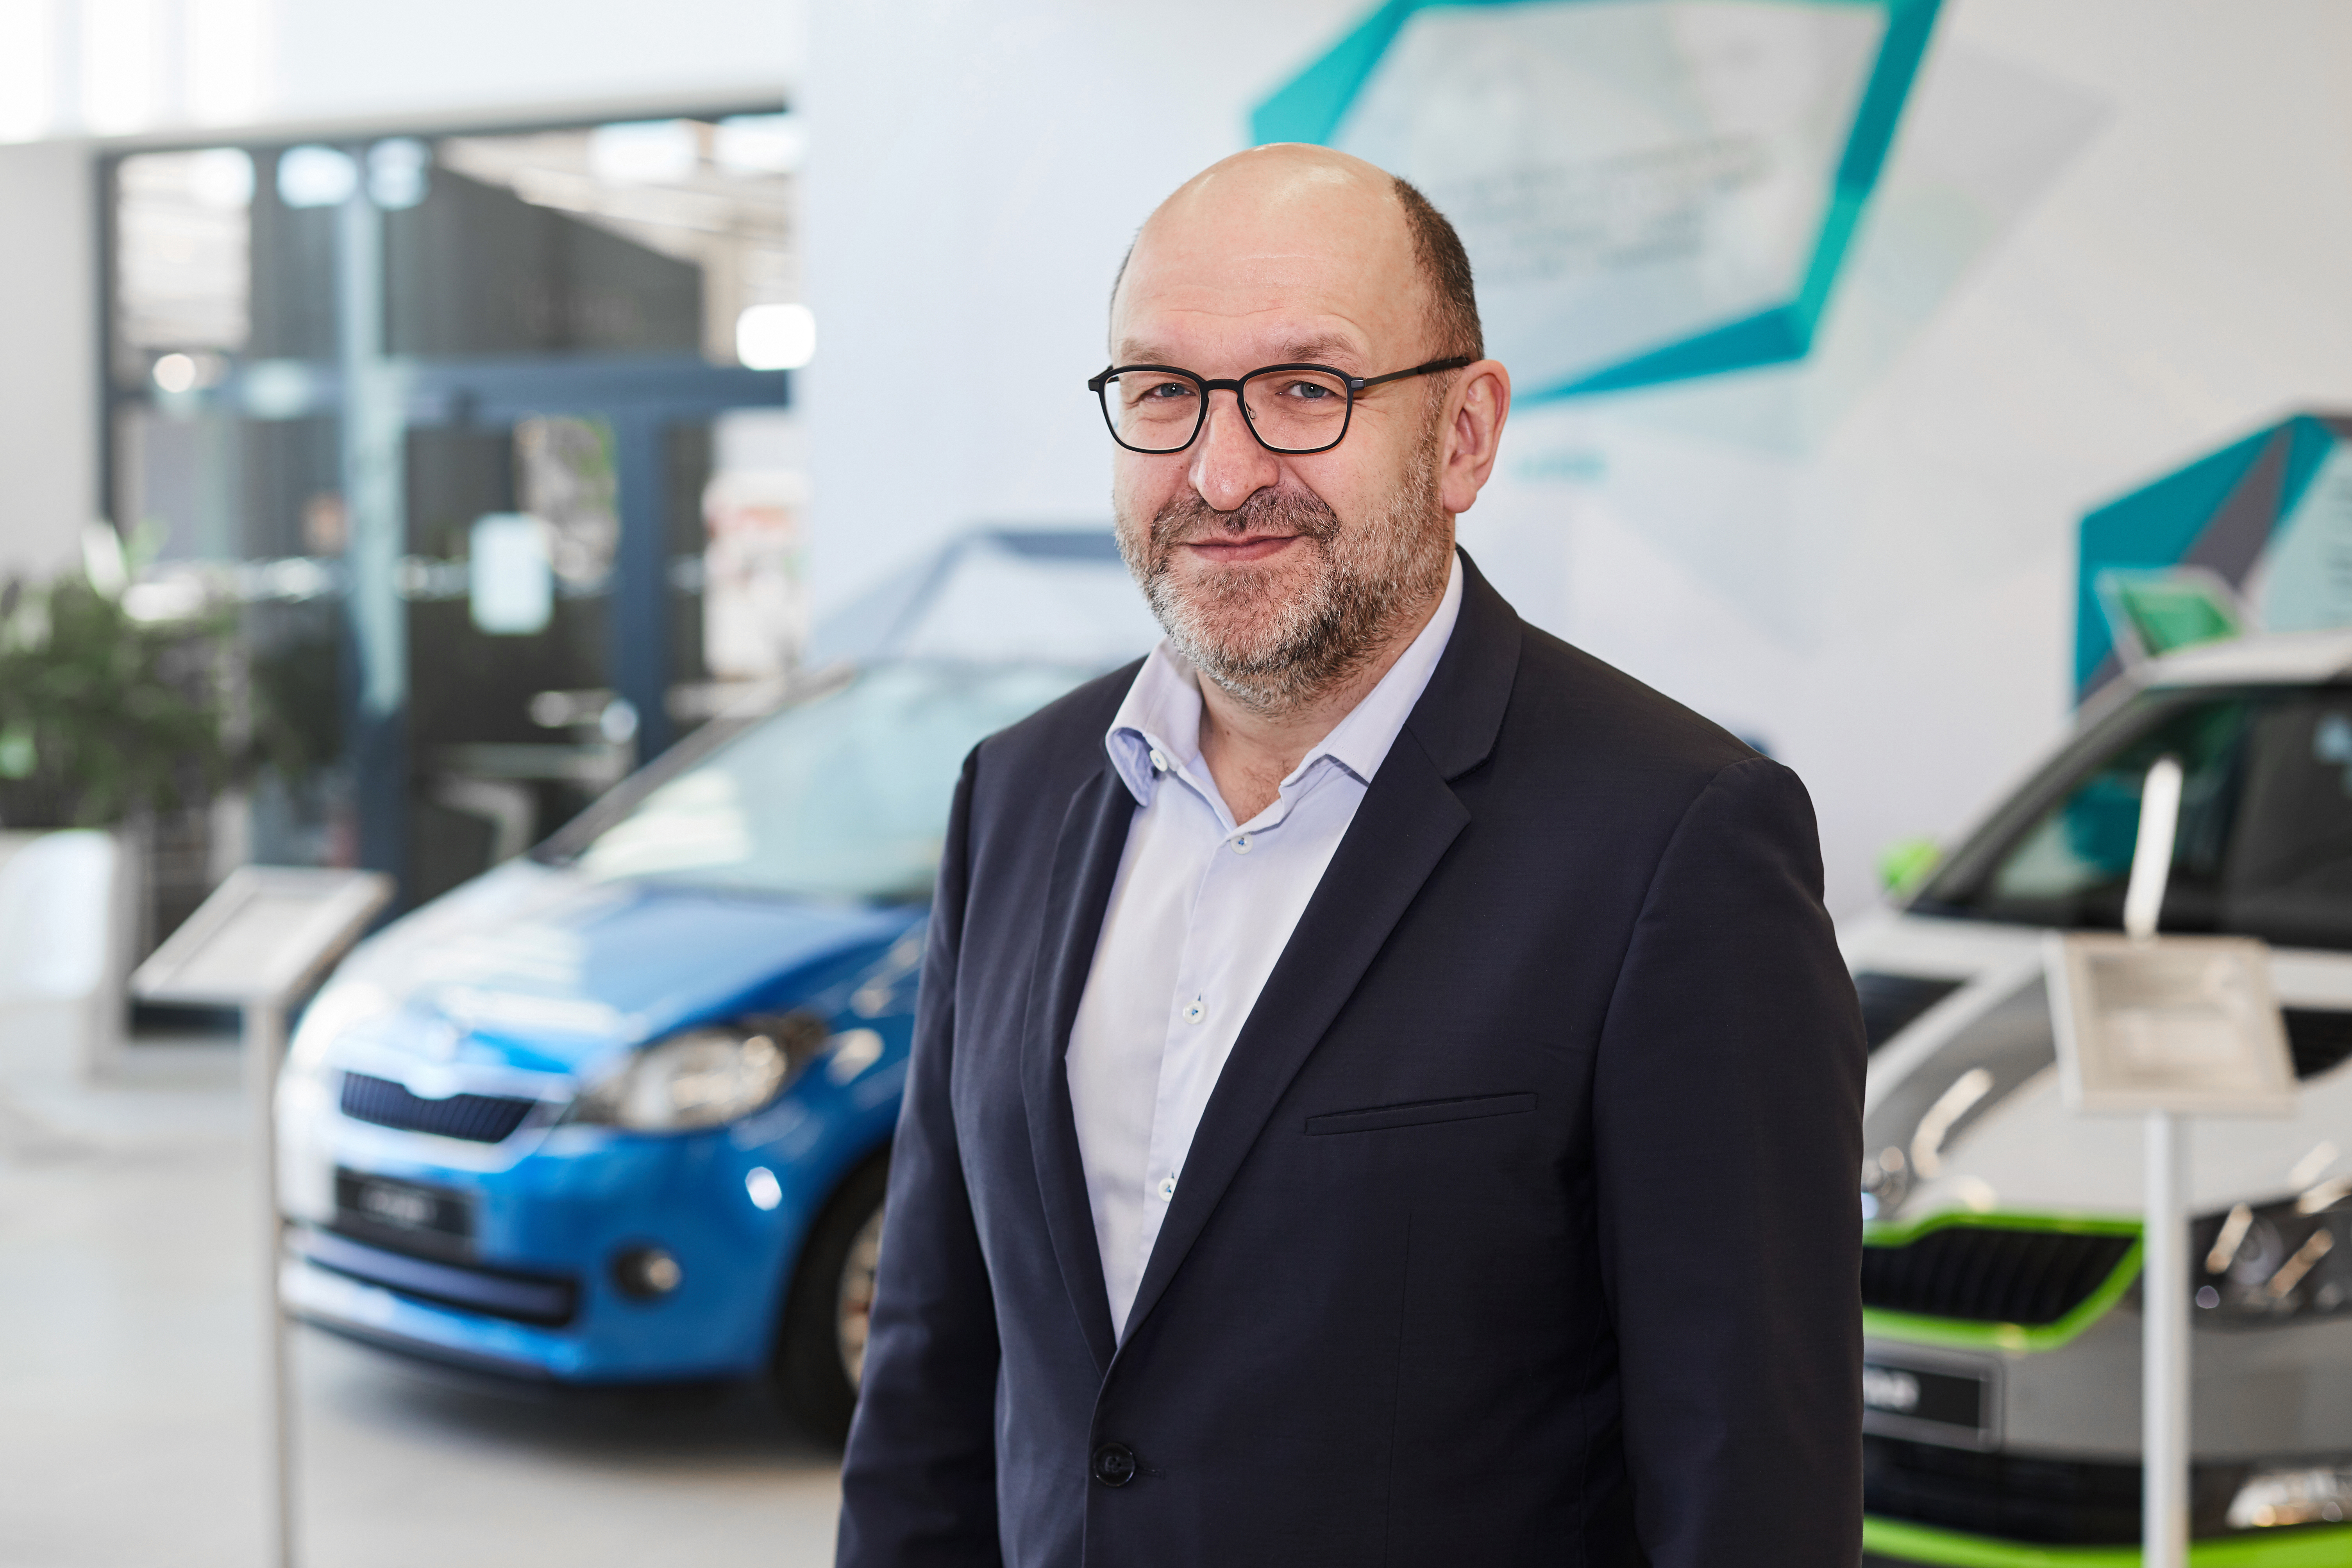 Interview with Alois Kauer, new head of the SKODA Academy and patron of the apprentice car 2020 - Image 1